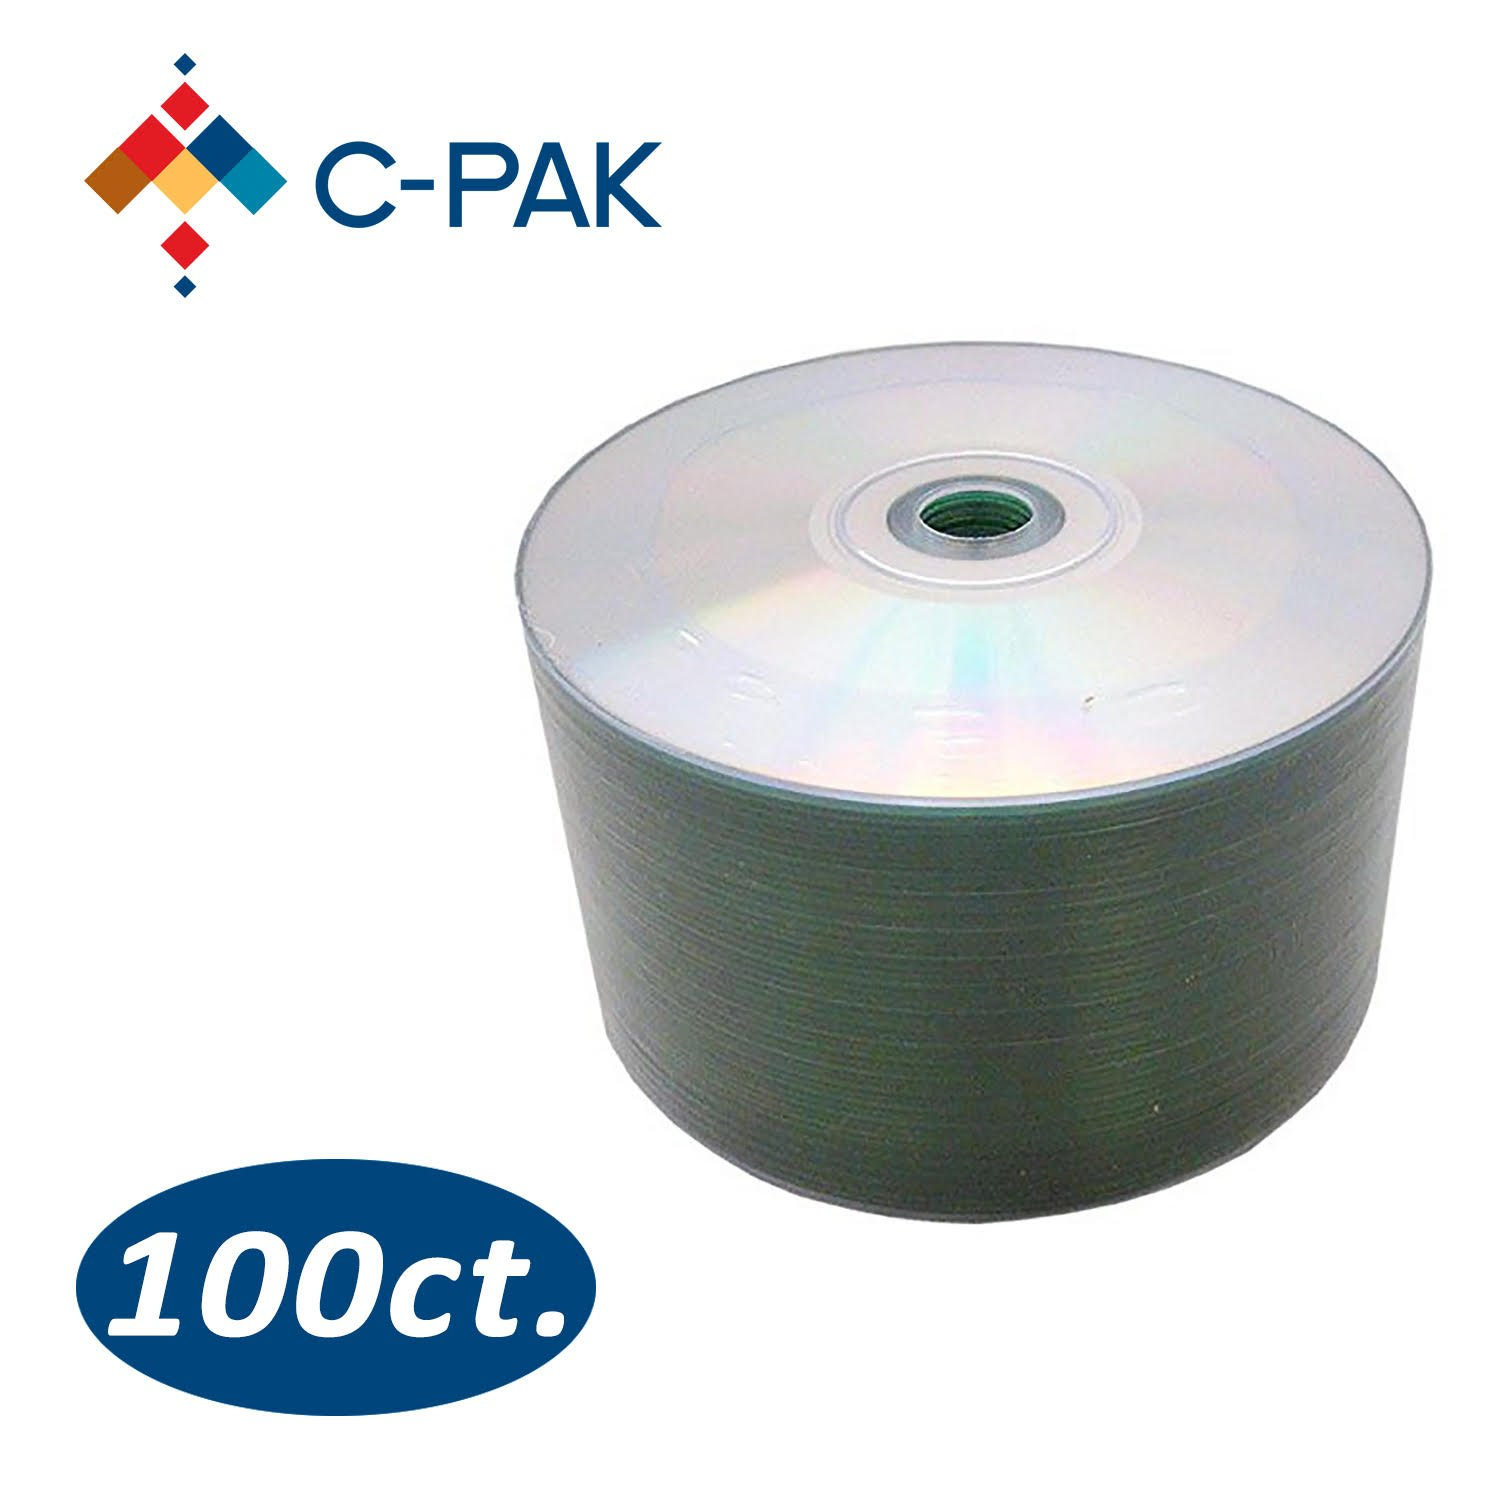 C-Pak 100 Pack CD-R Recordable Discs, 700MB 80 Minute 52x Write Speed Blank CDs for Music Image Data Storage Disks